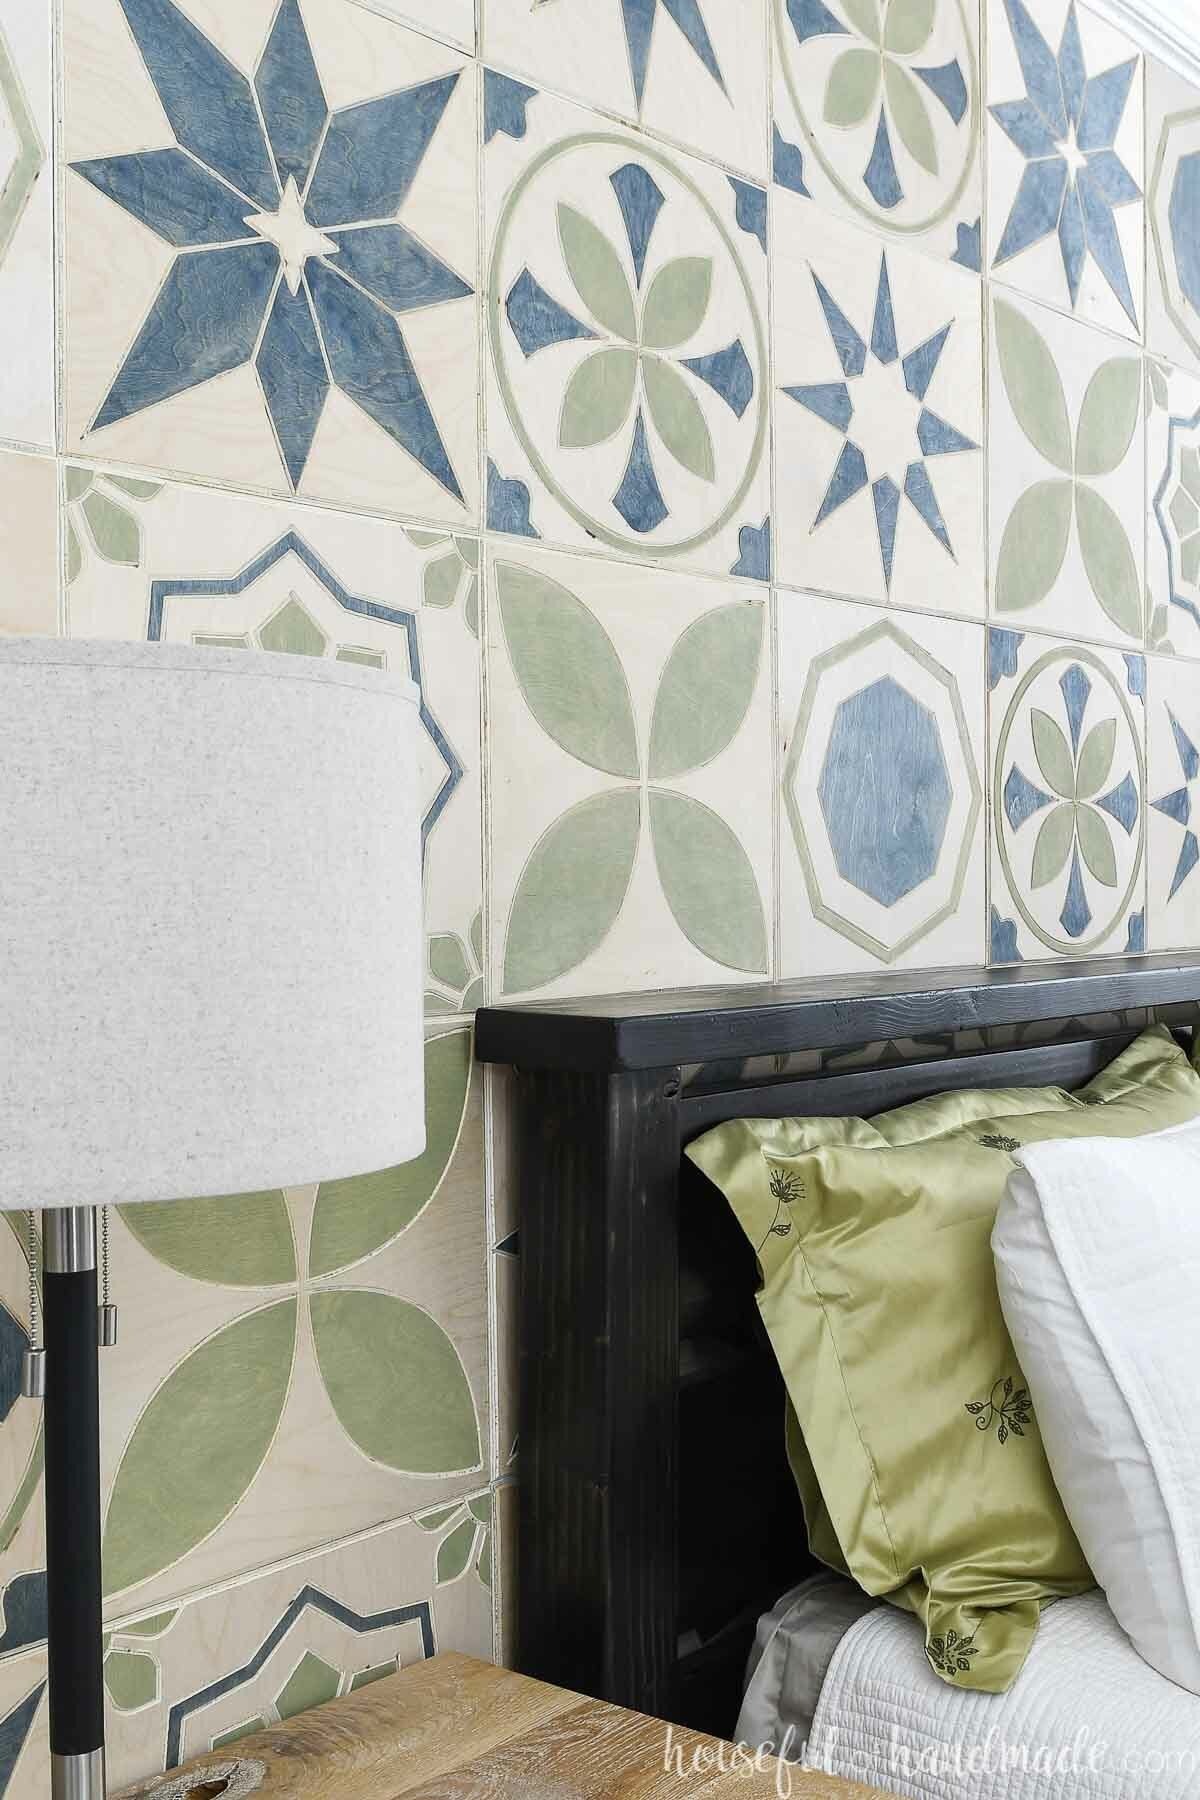 Angled view of the patterned tile DIY accent wall installed on the wall behind a bed.